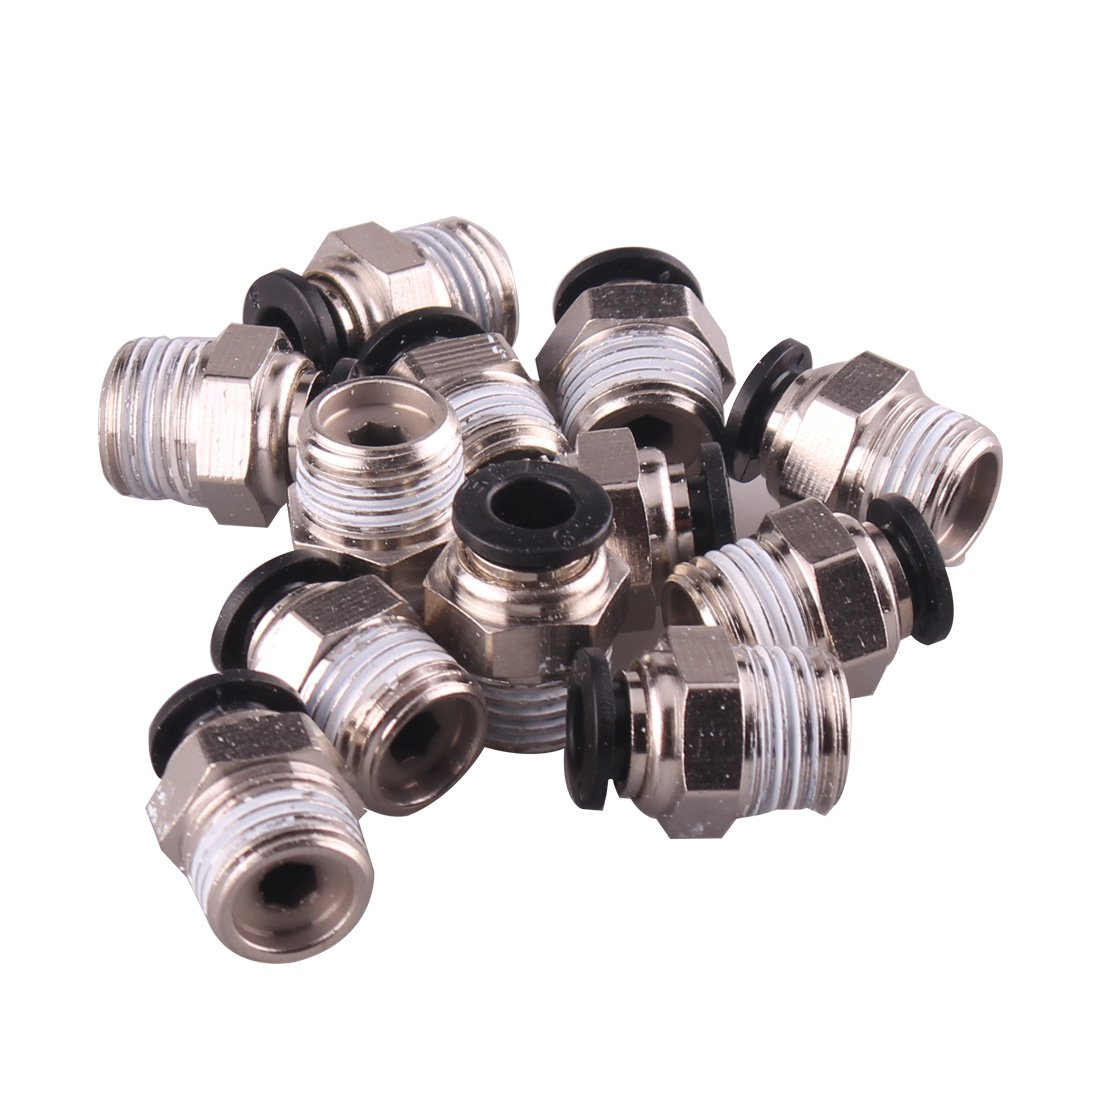 1/4' PT Male Thread 8mm Push In Joint Pneumatic Connector Quick Fittings 12 Pcs Ted Lele (8mm 1/4)